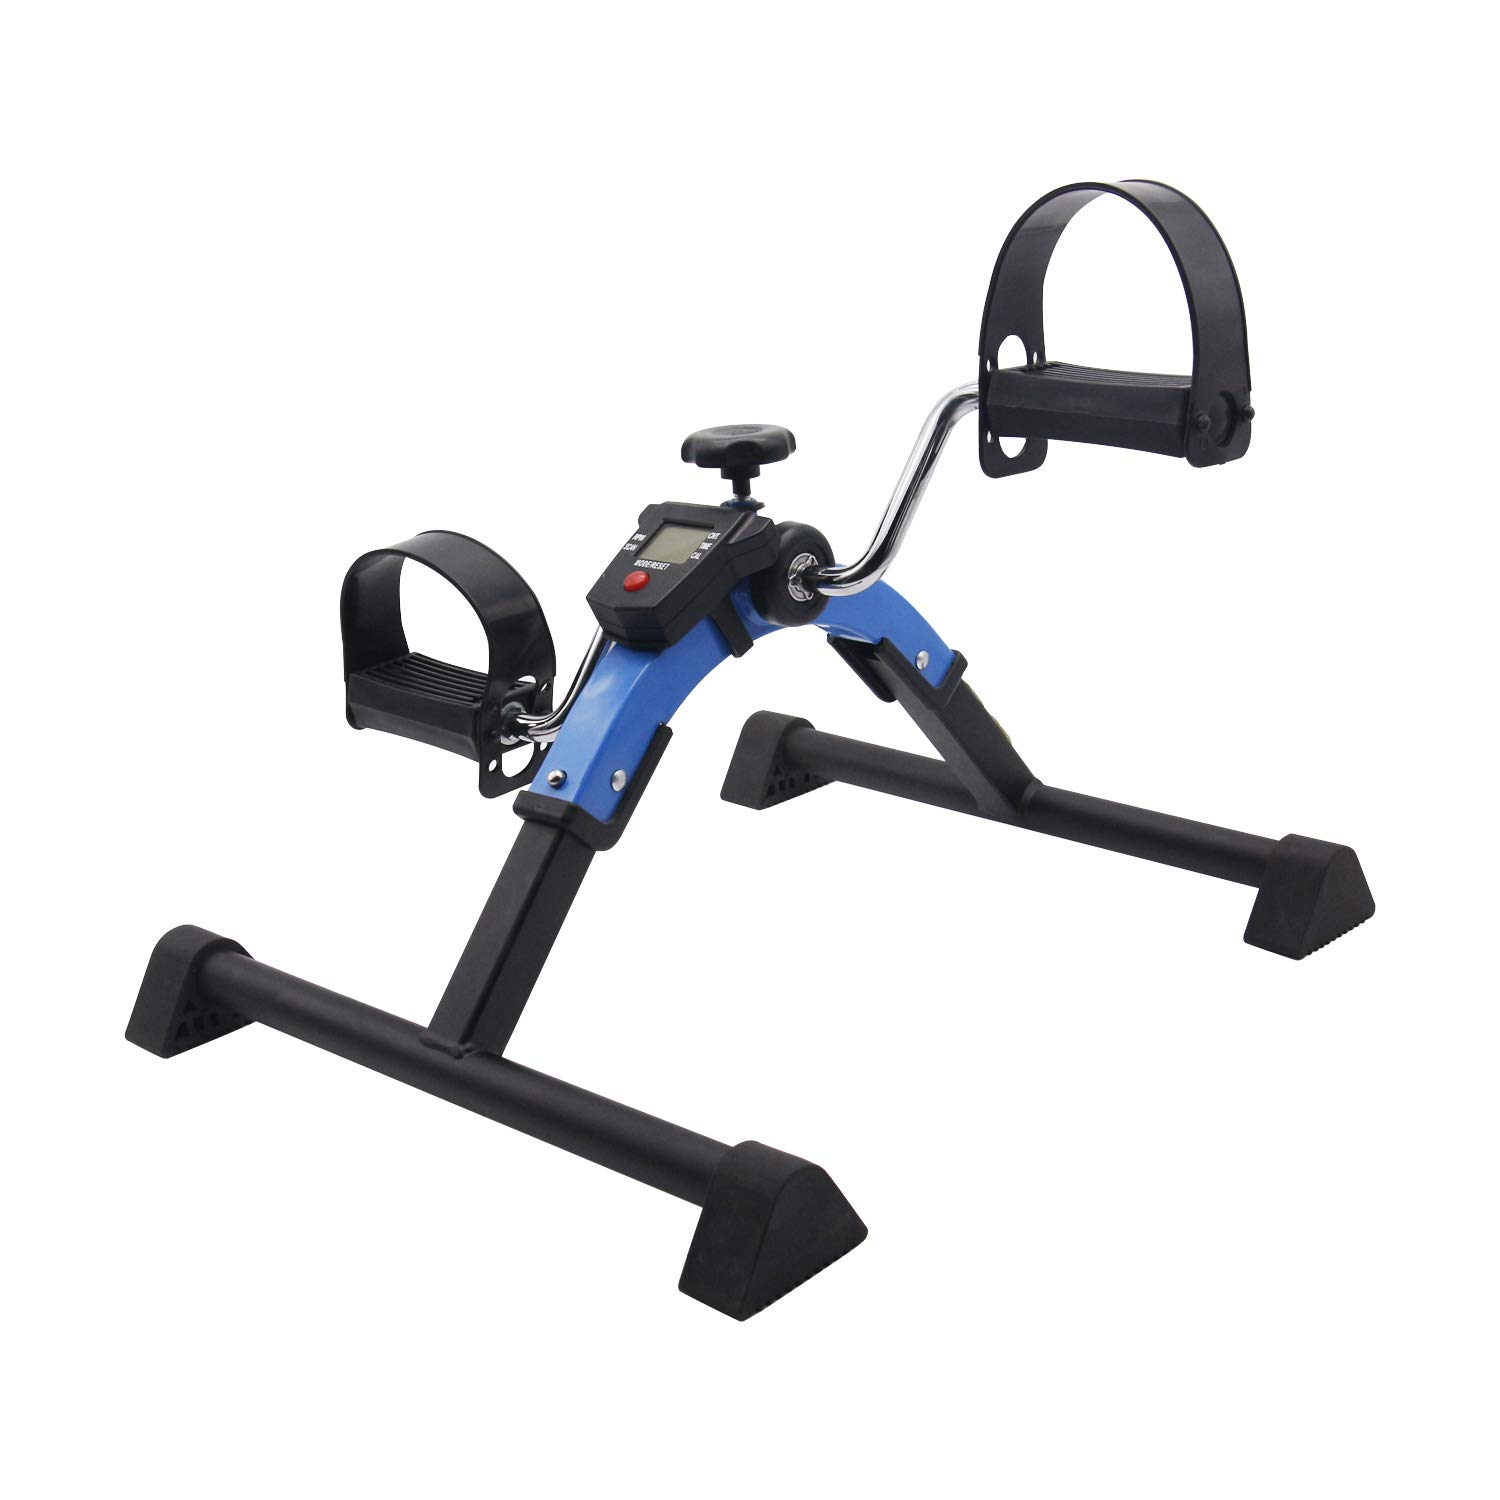 Friday discount Stationary Exercise Bike Indoor Under Desk Pedal Exerciser with LCD Monitor and Adjustable Resistance Fitness Foot Bike Blue by Friday discount (Image #2)